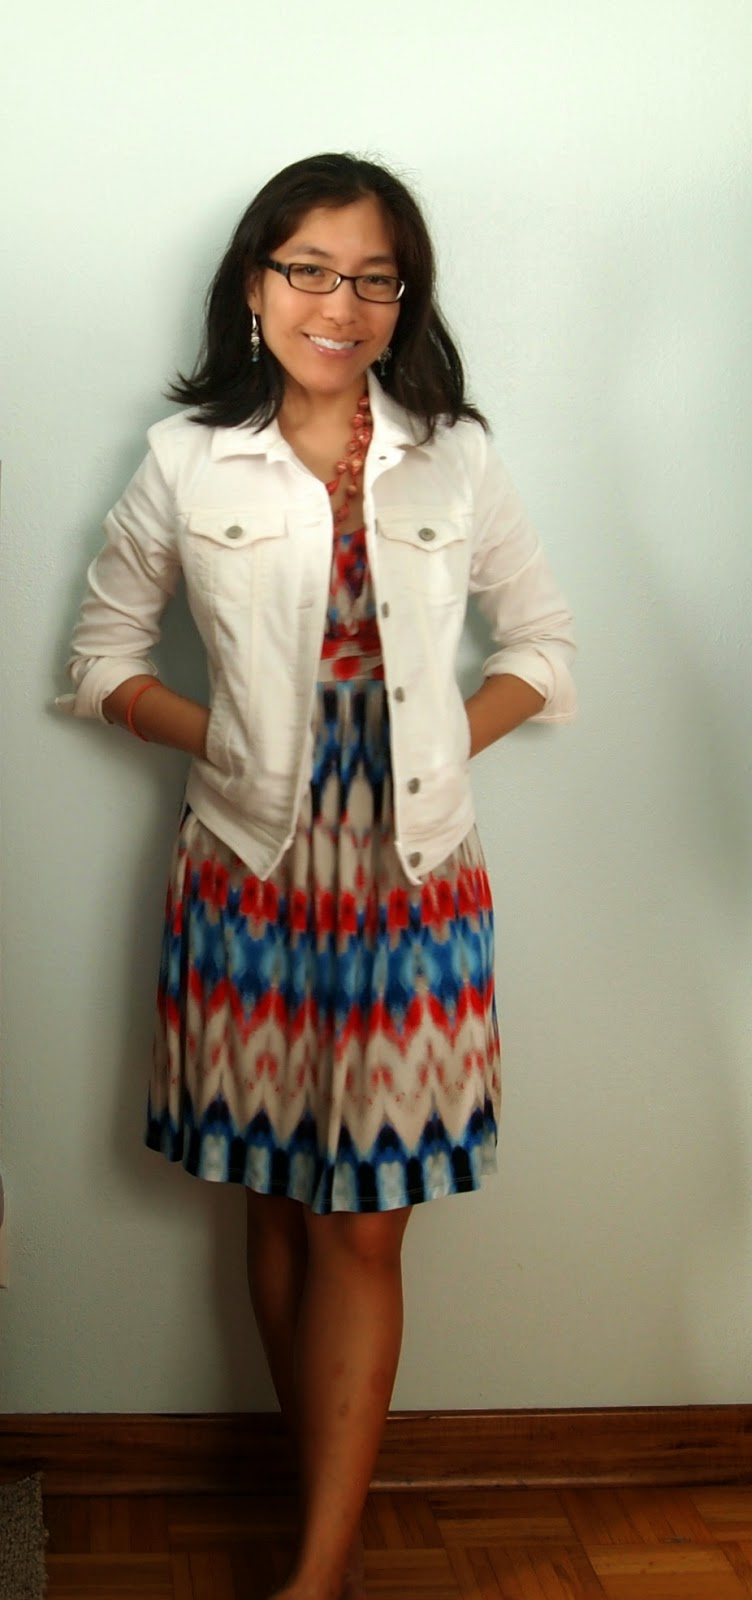 white denim jacket dress blue red white bead necklace teacher style